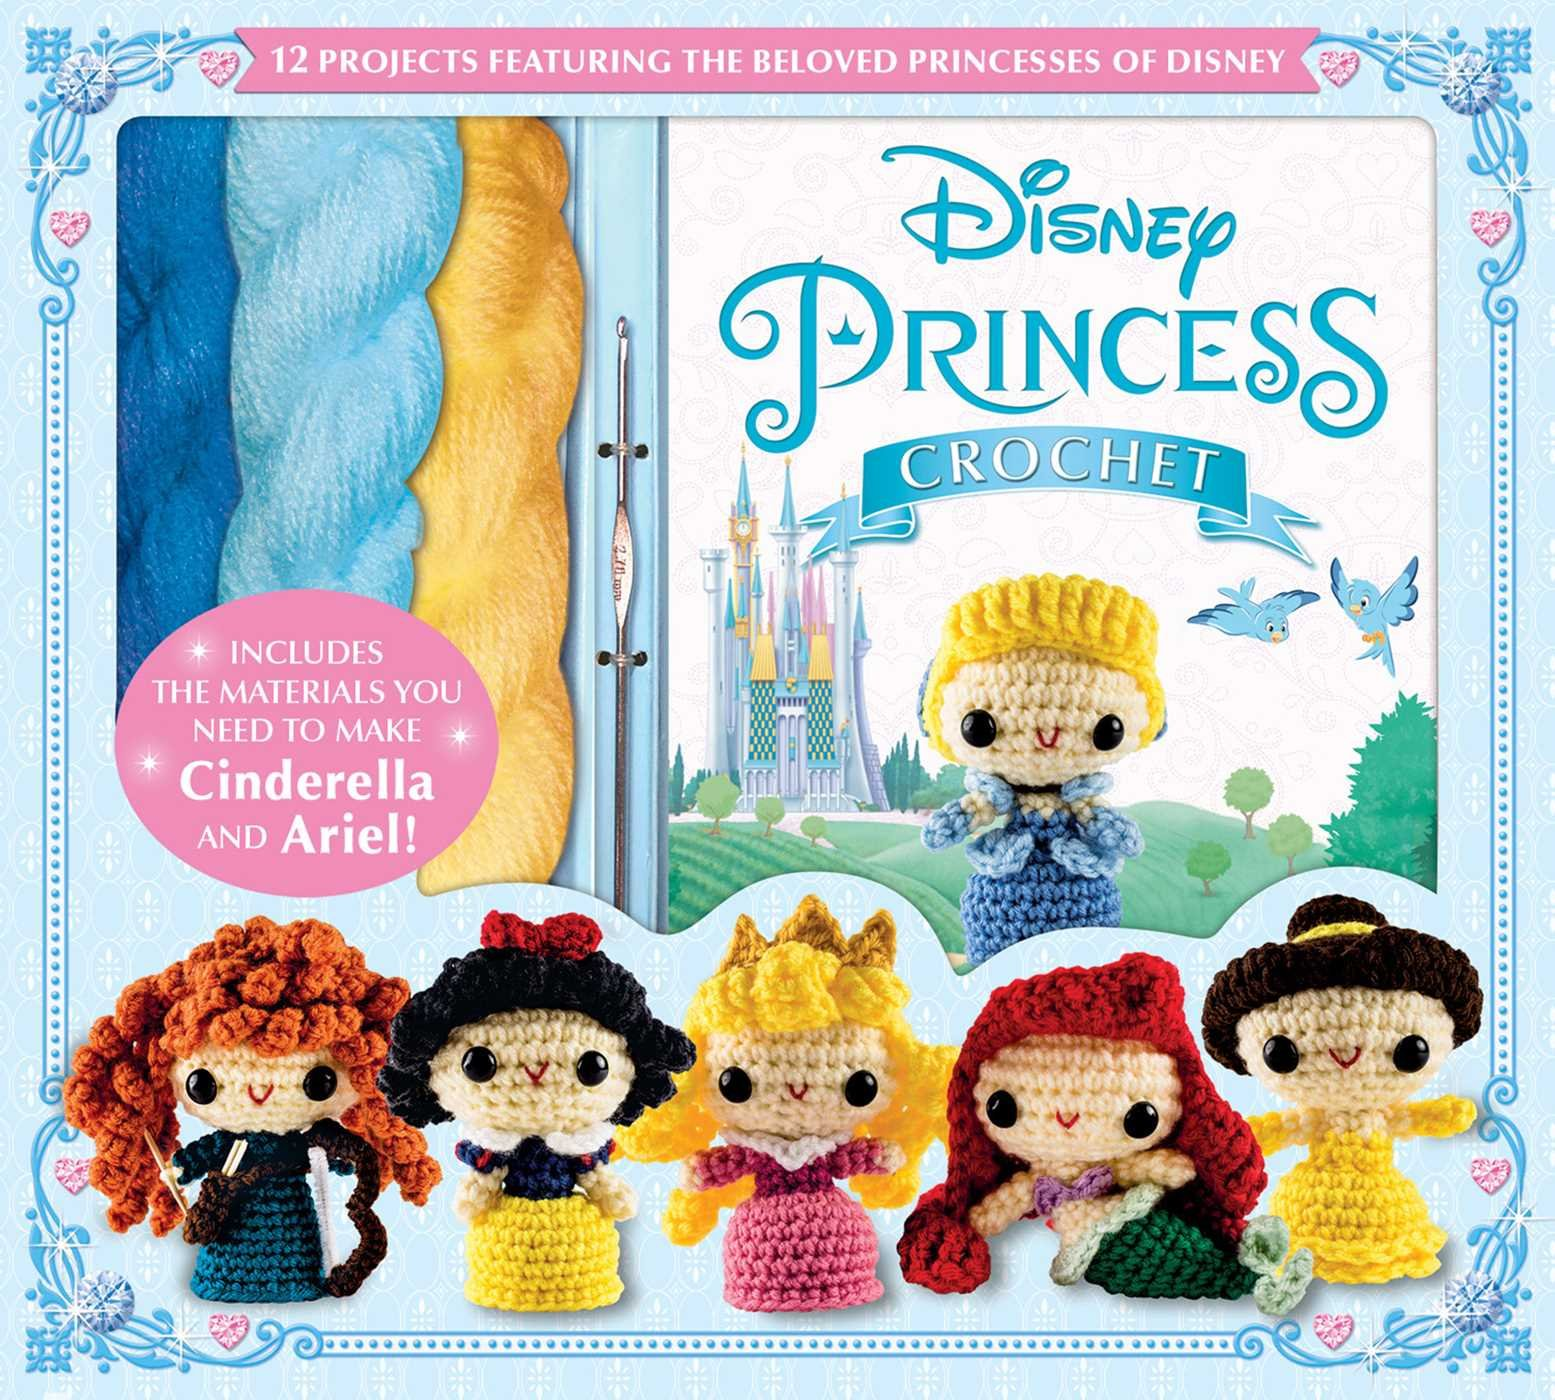 Disney Princess Crochet (Crochet Kits)